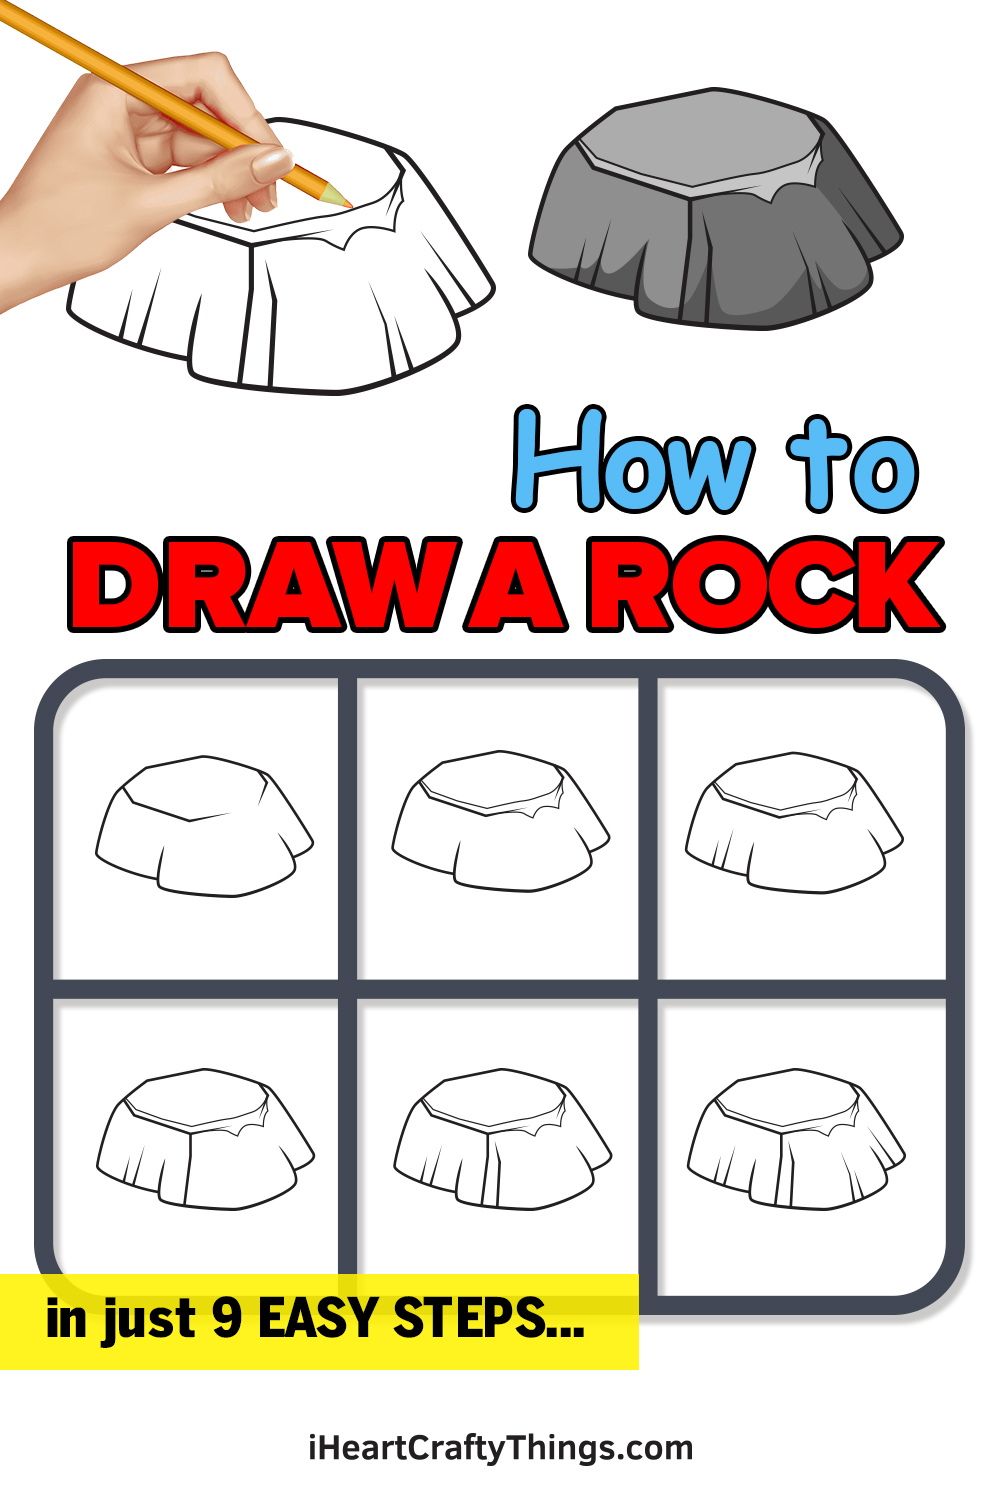 how to draw a rock in 9 easy steps